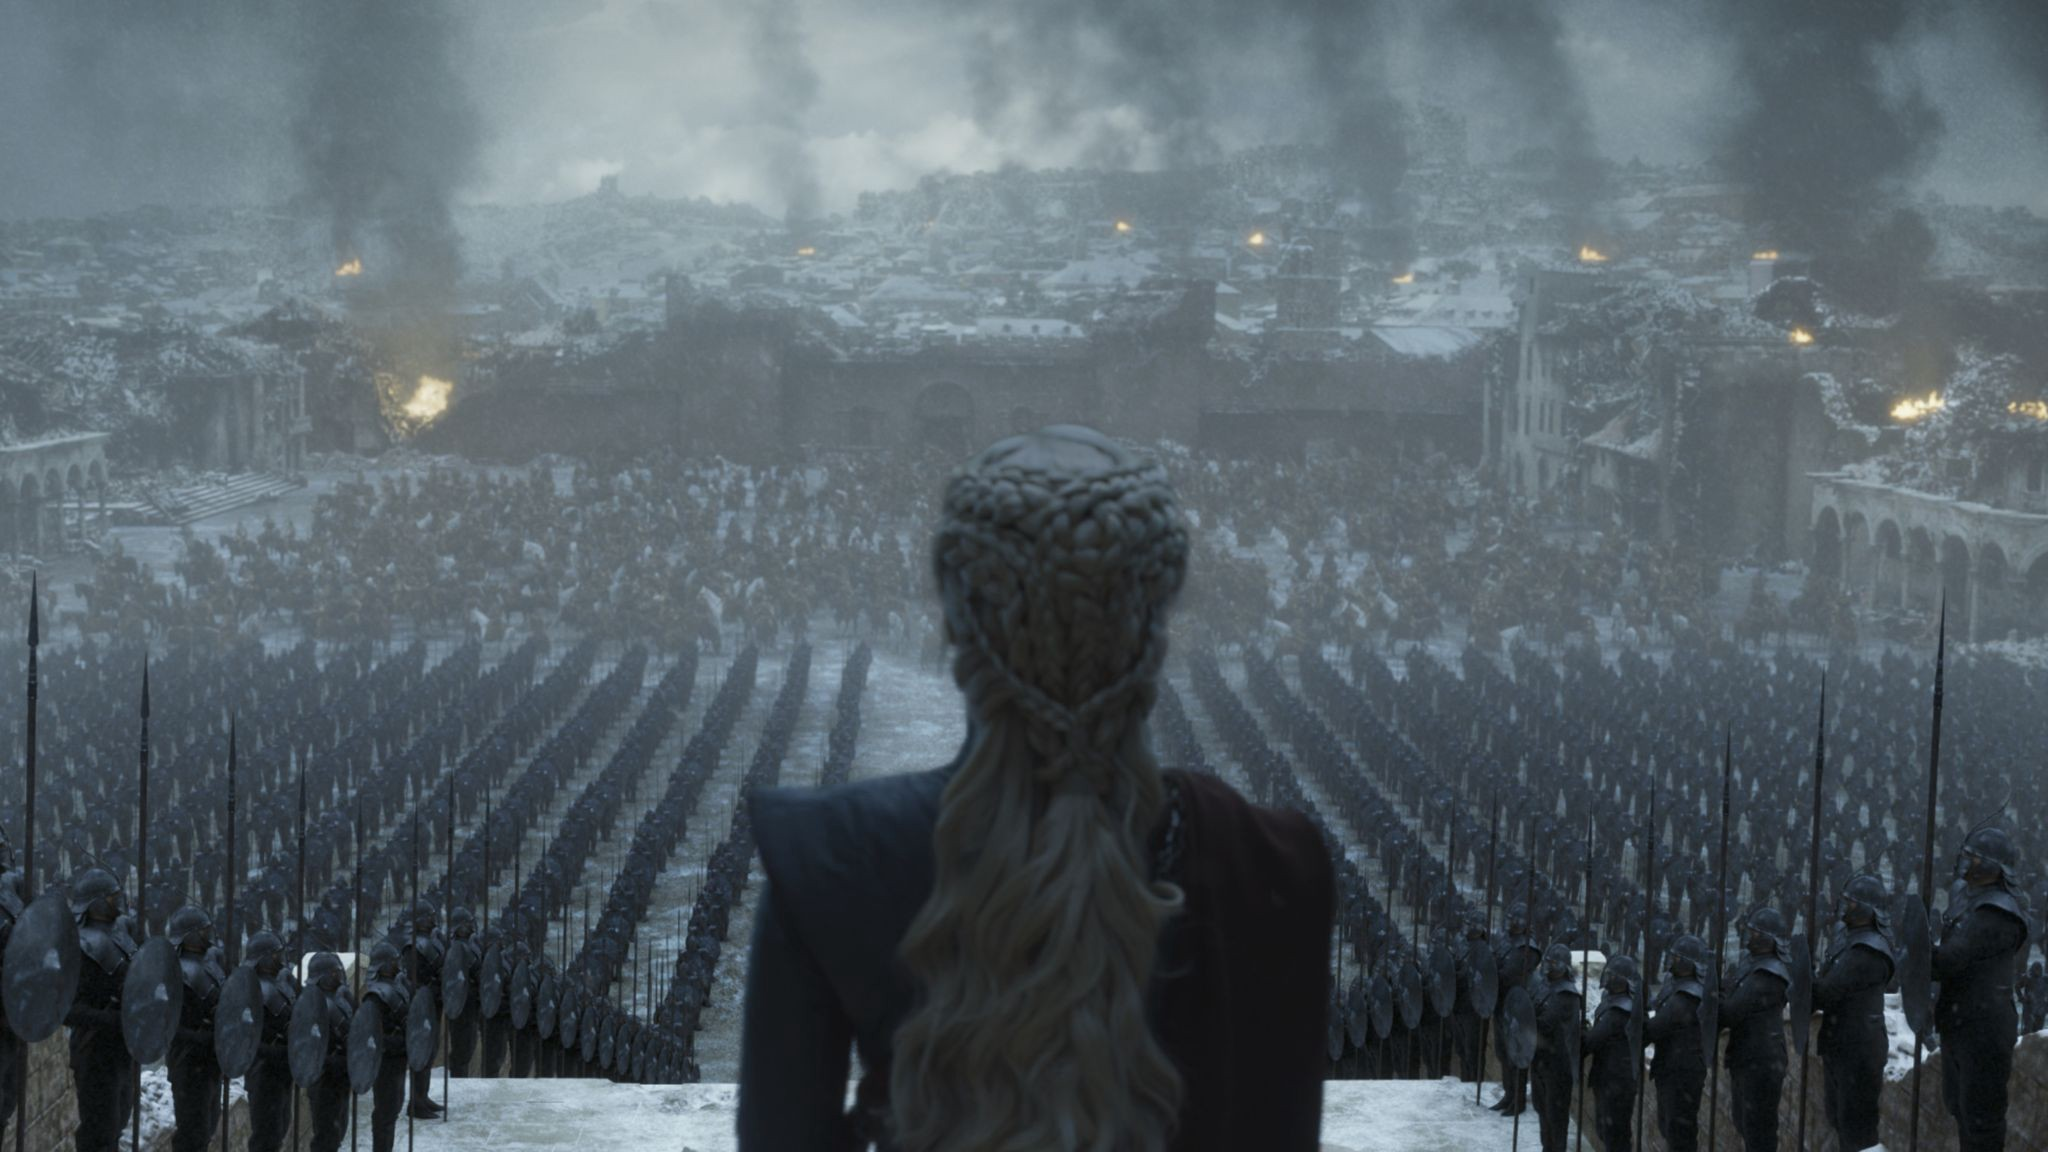 An image from HBO's Game of Thrones. Daenerys Targaryen watches over her troops. They stand in formation, ahead of a battlefield.